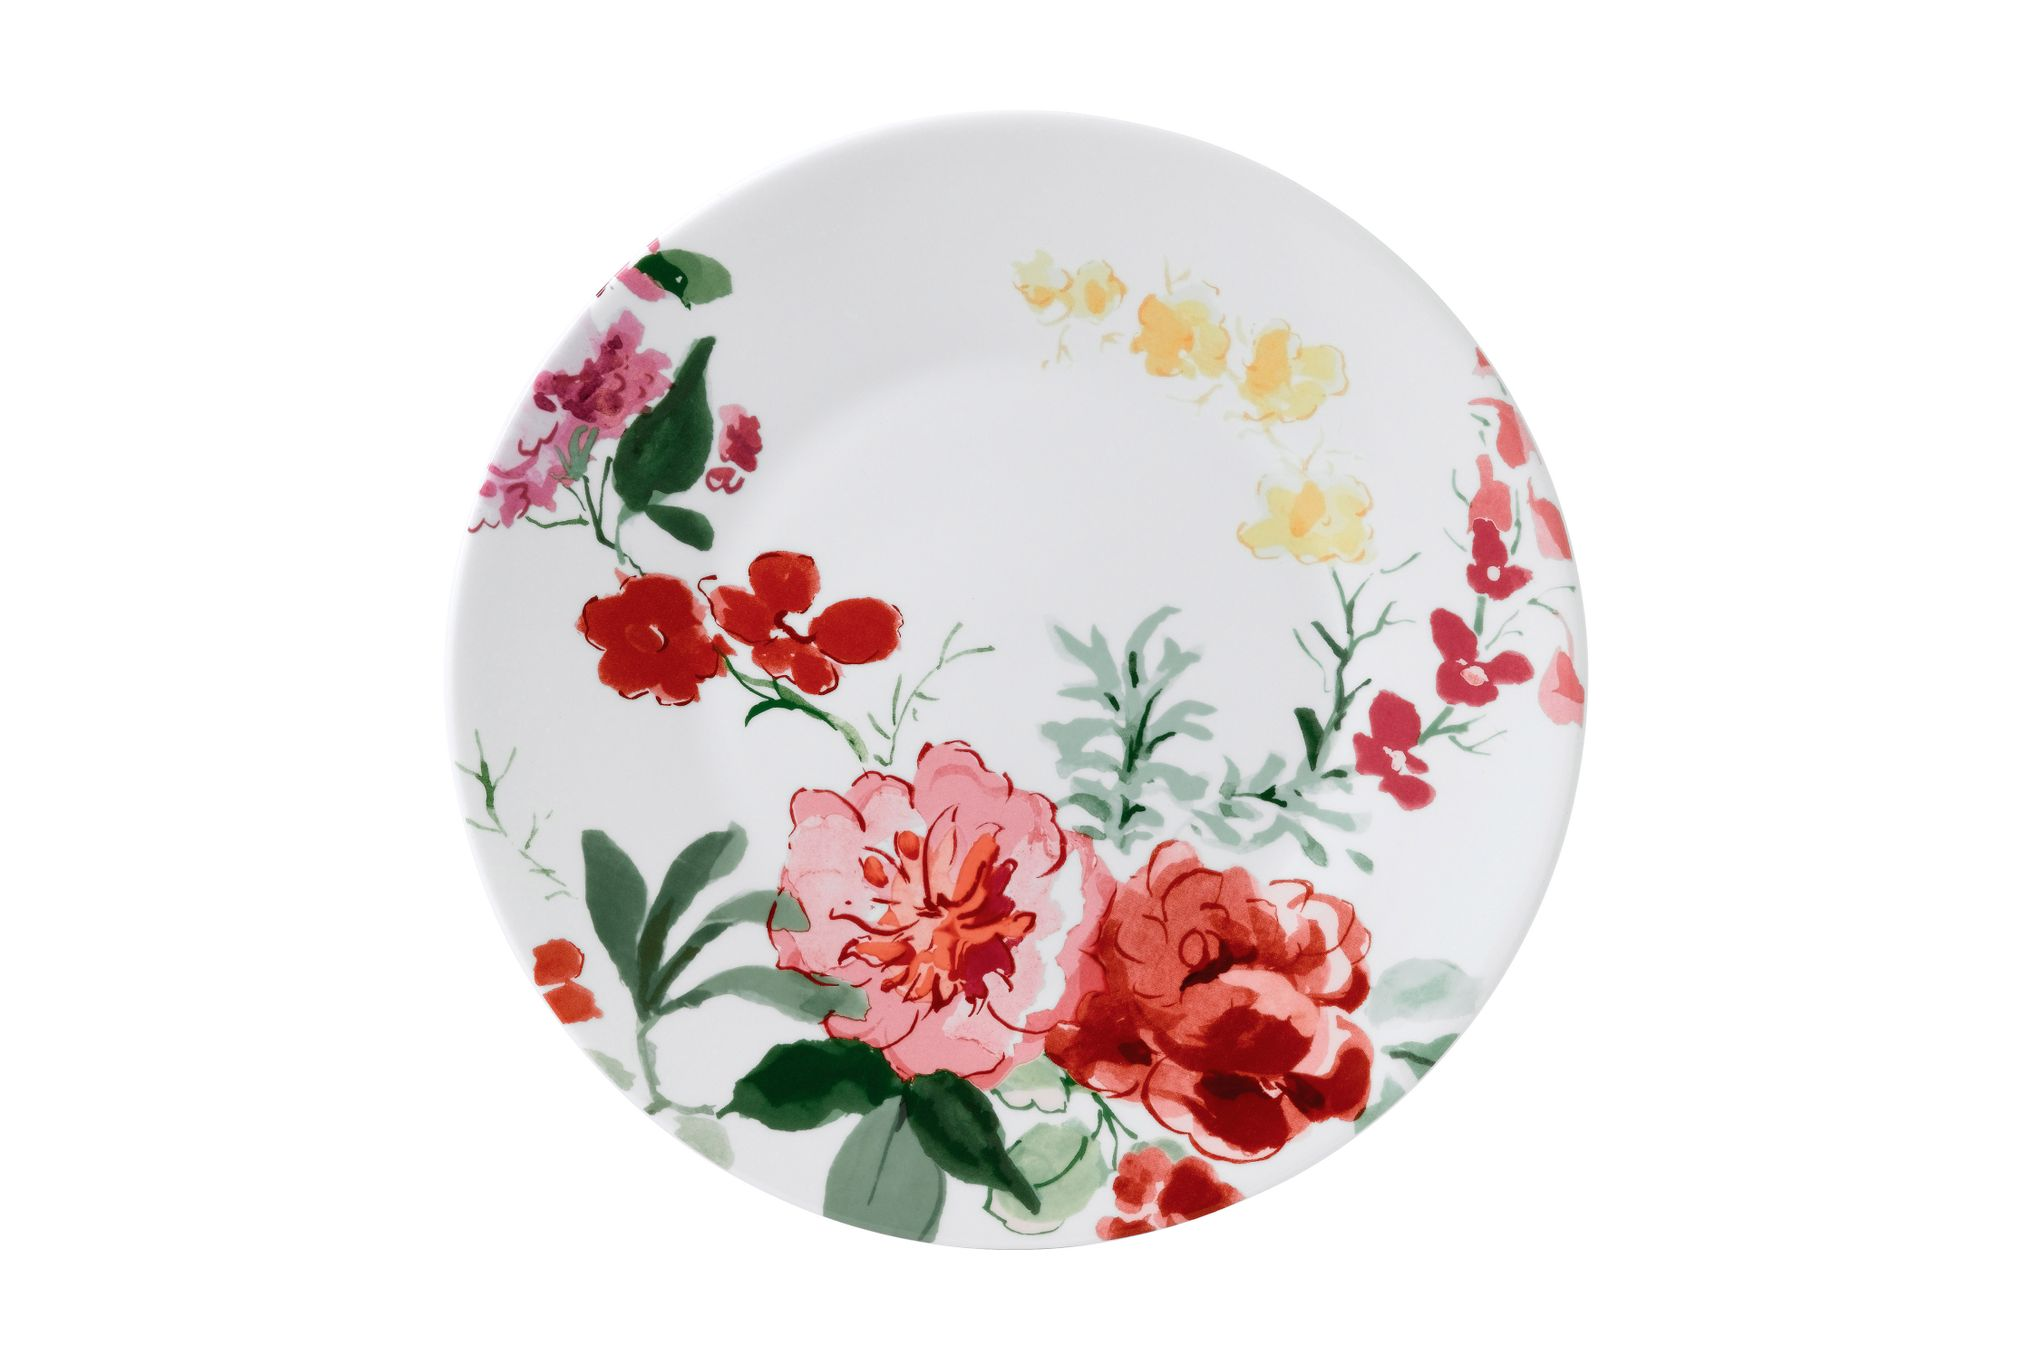 Jasper Conran for Wedgwood Floral Charger 33cm thumb 1